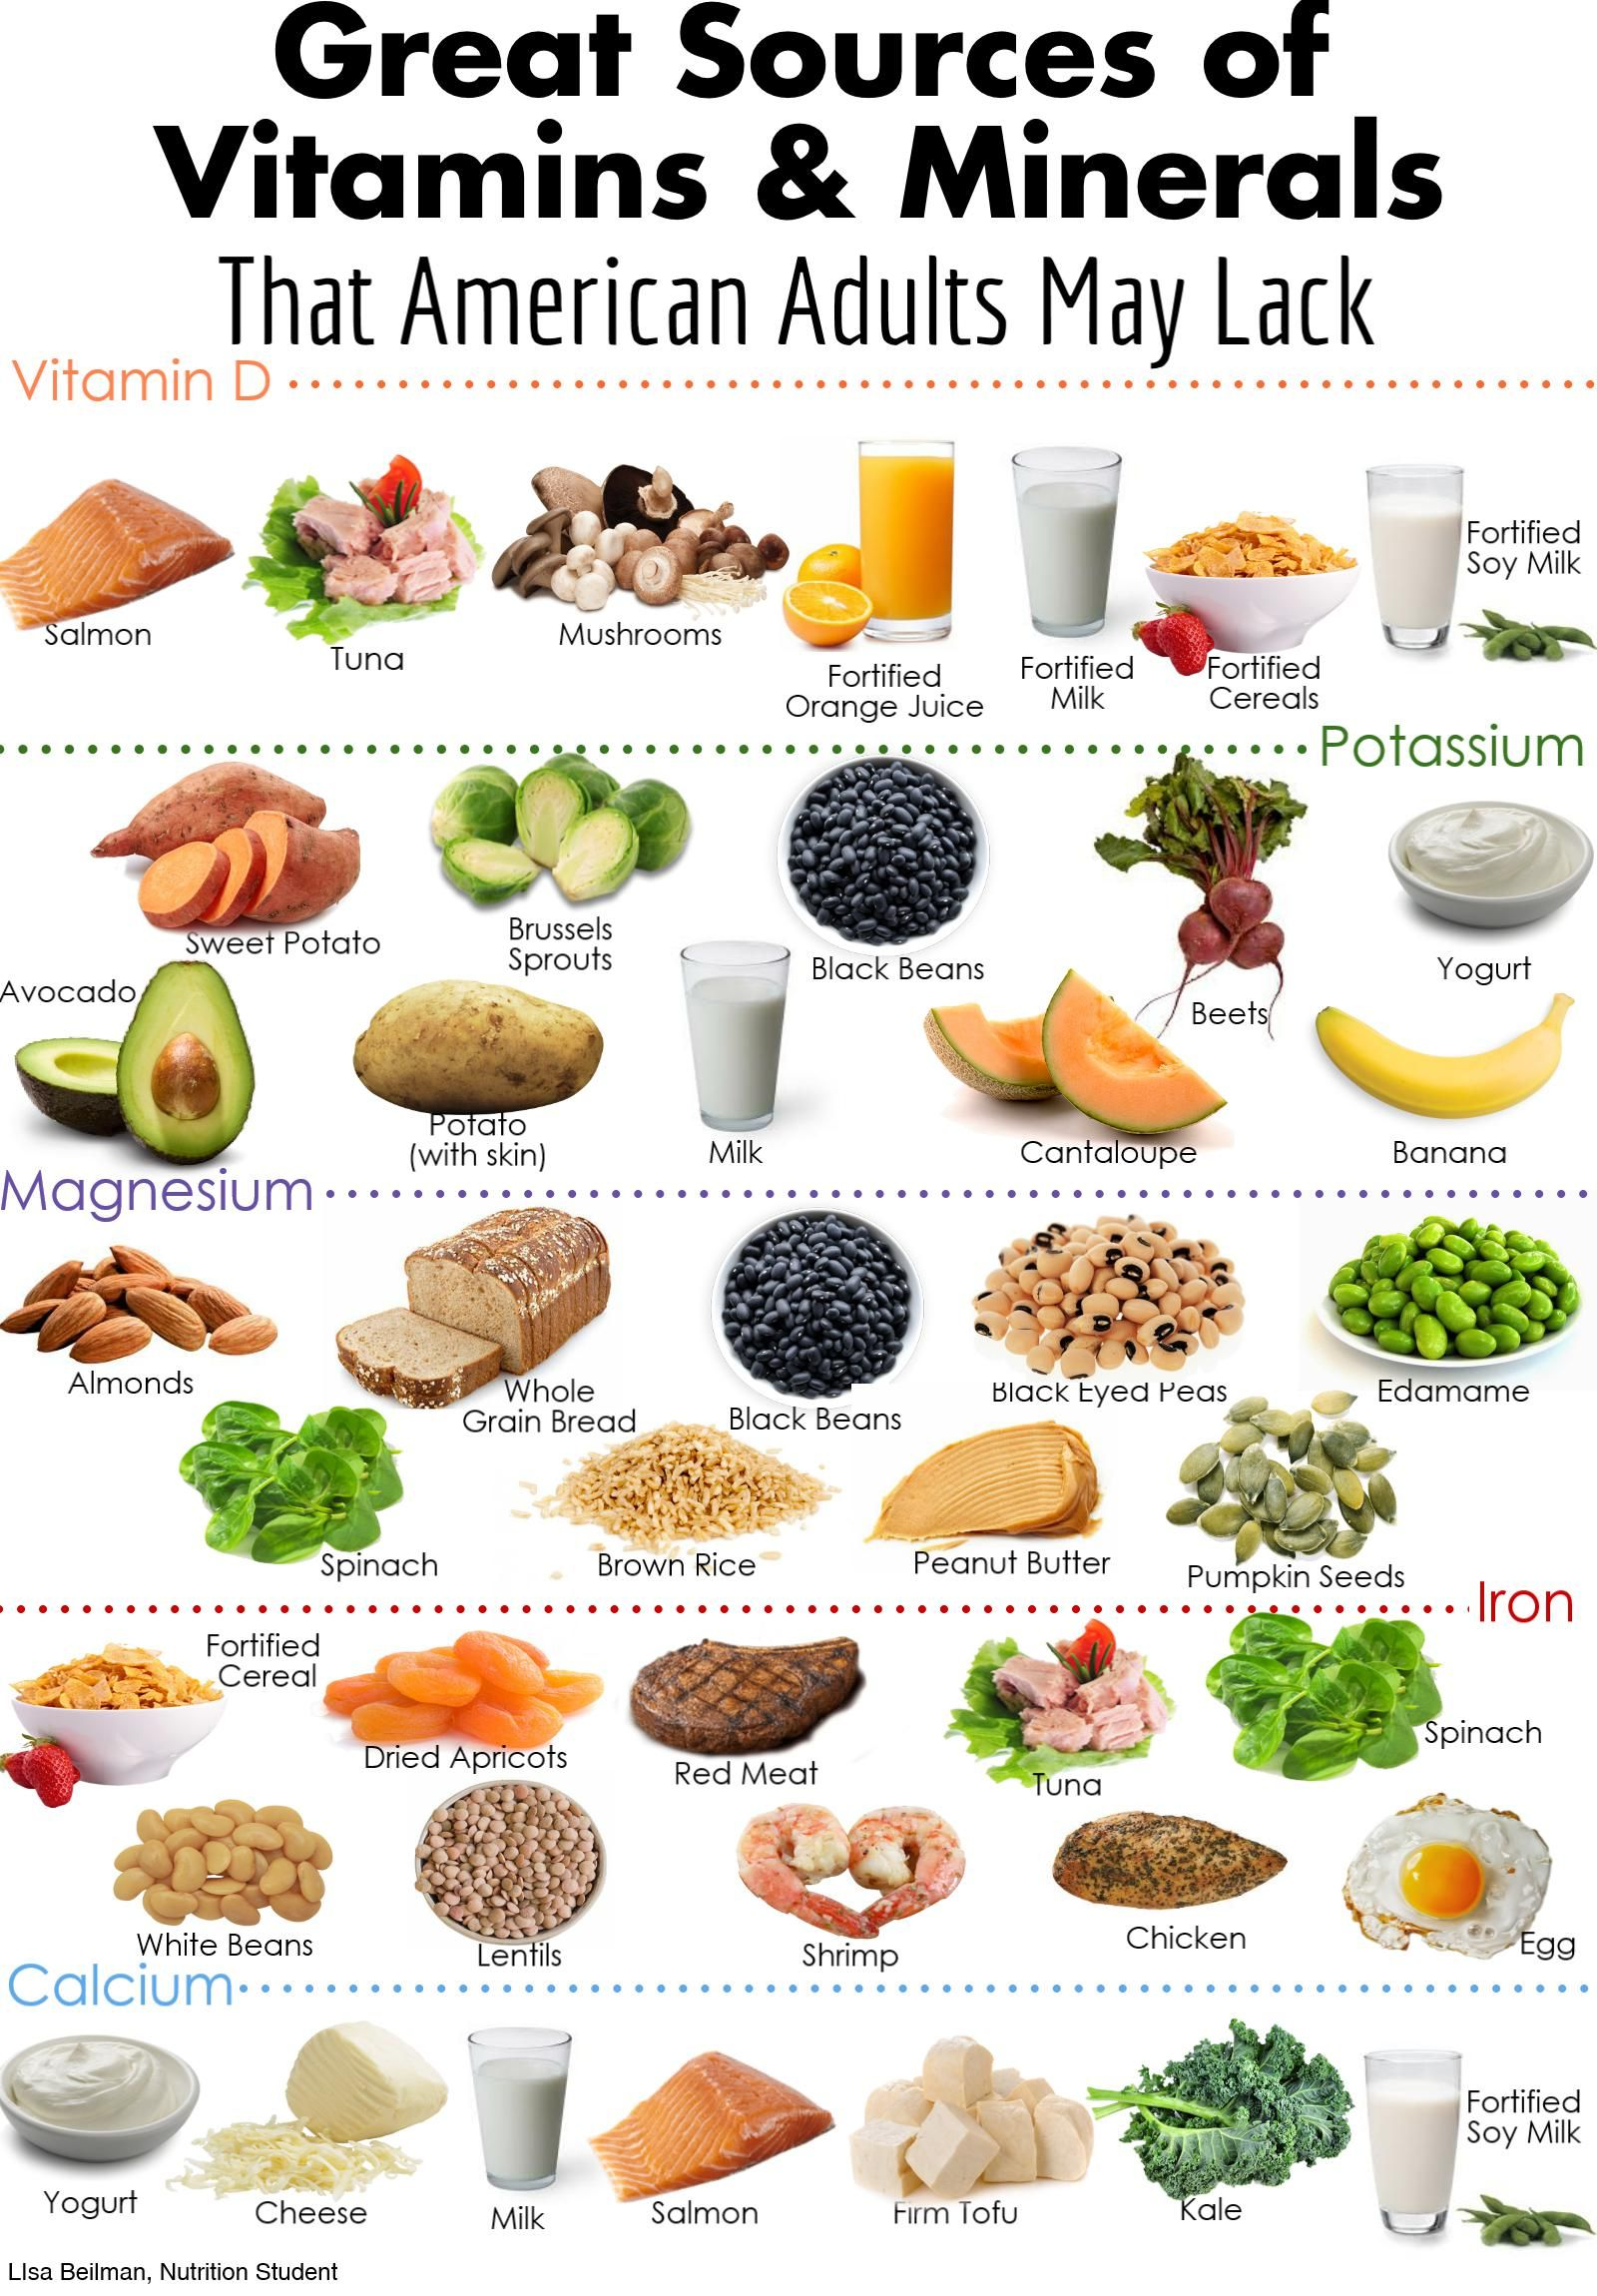 Get Your Vitamins Minerals Through Food First With These Great